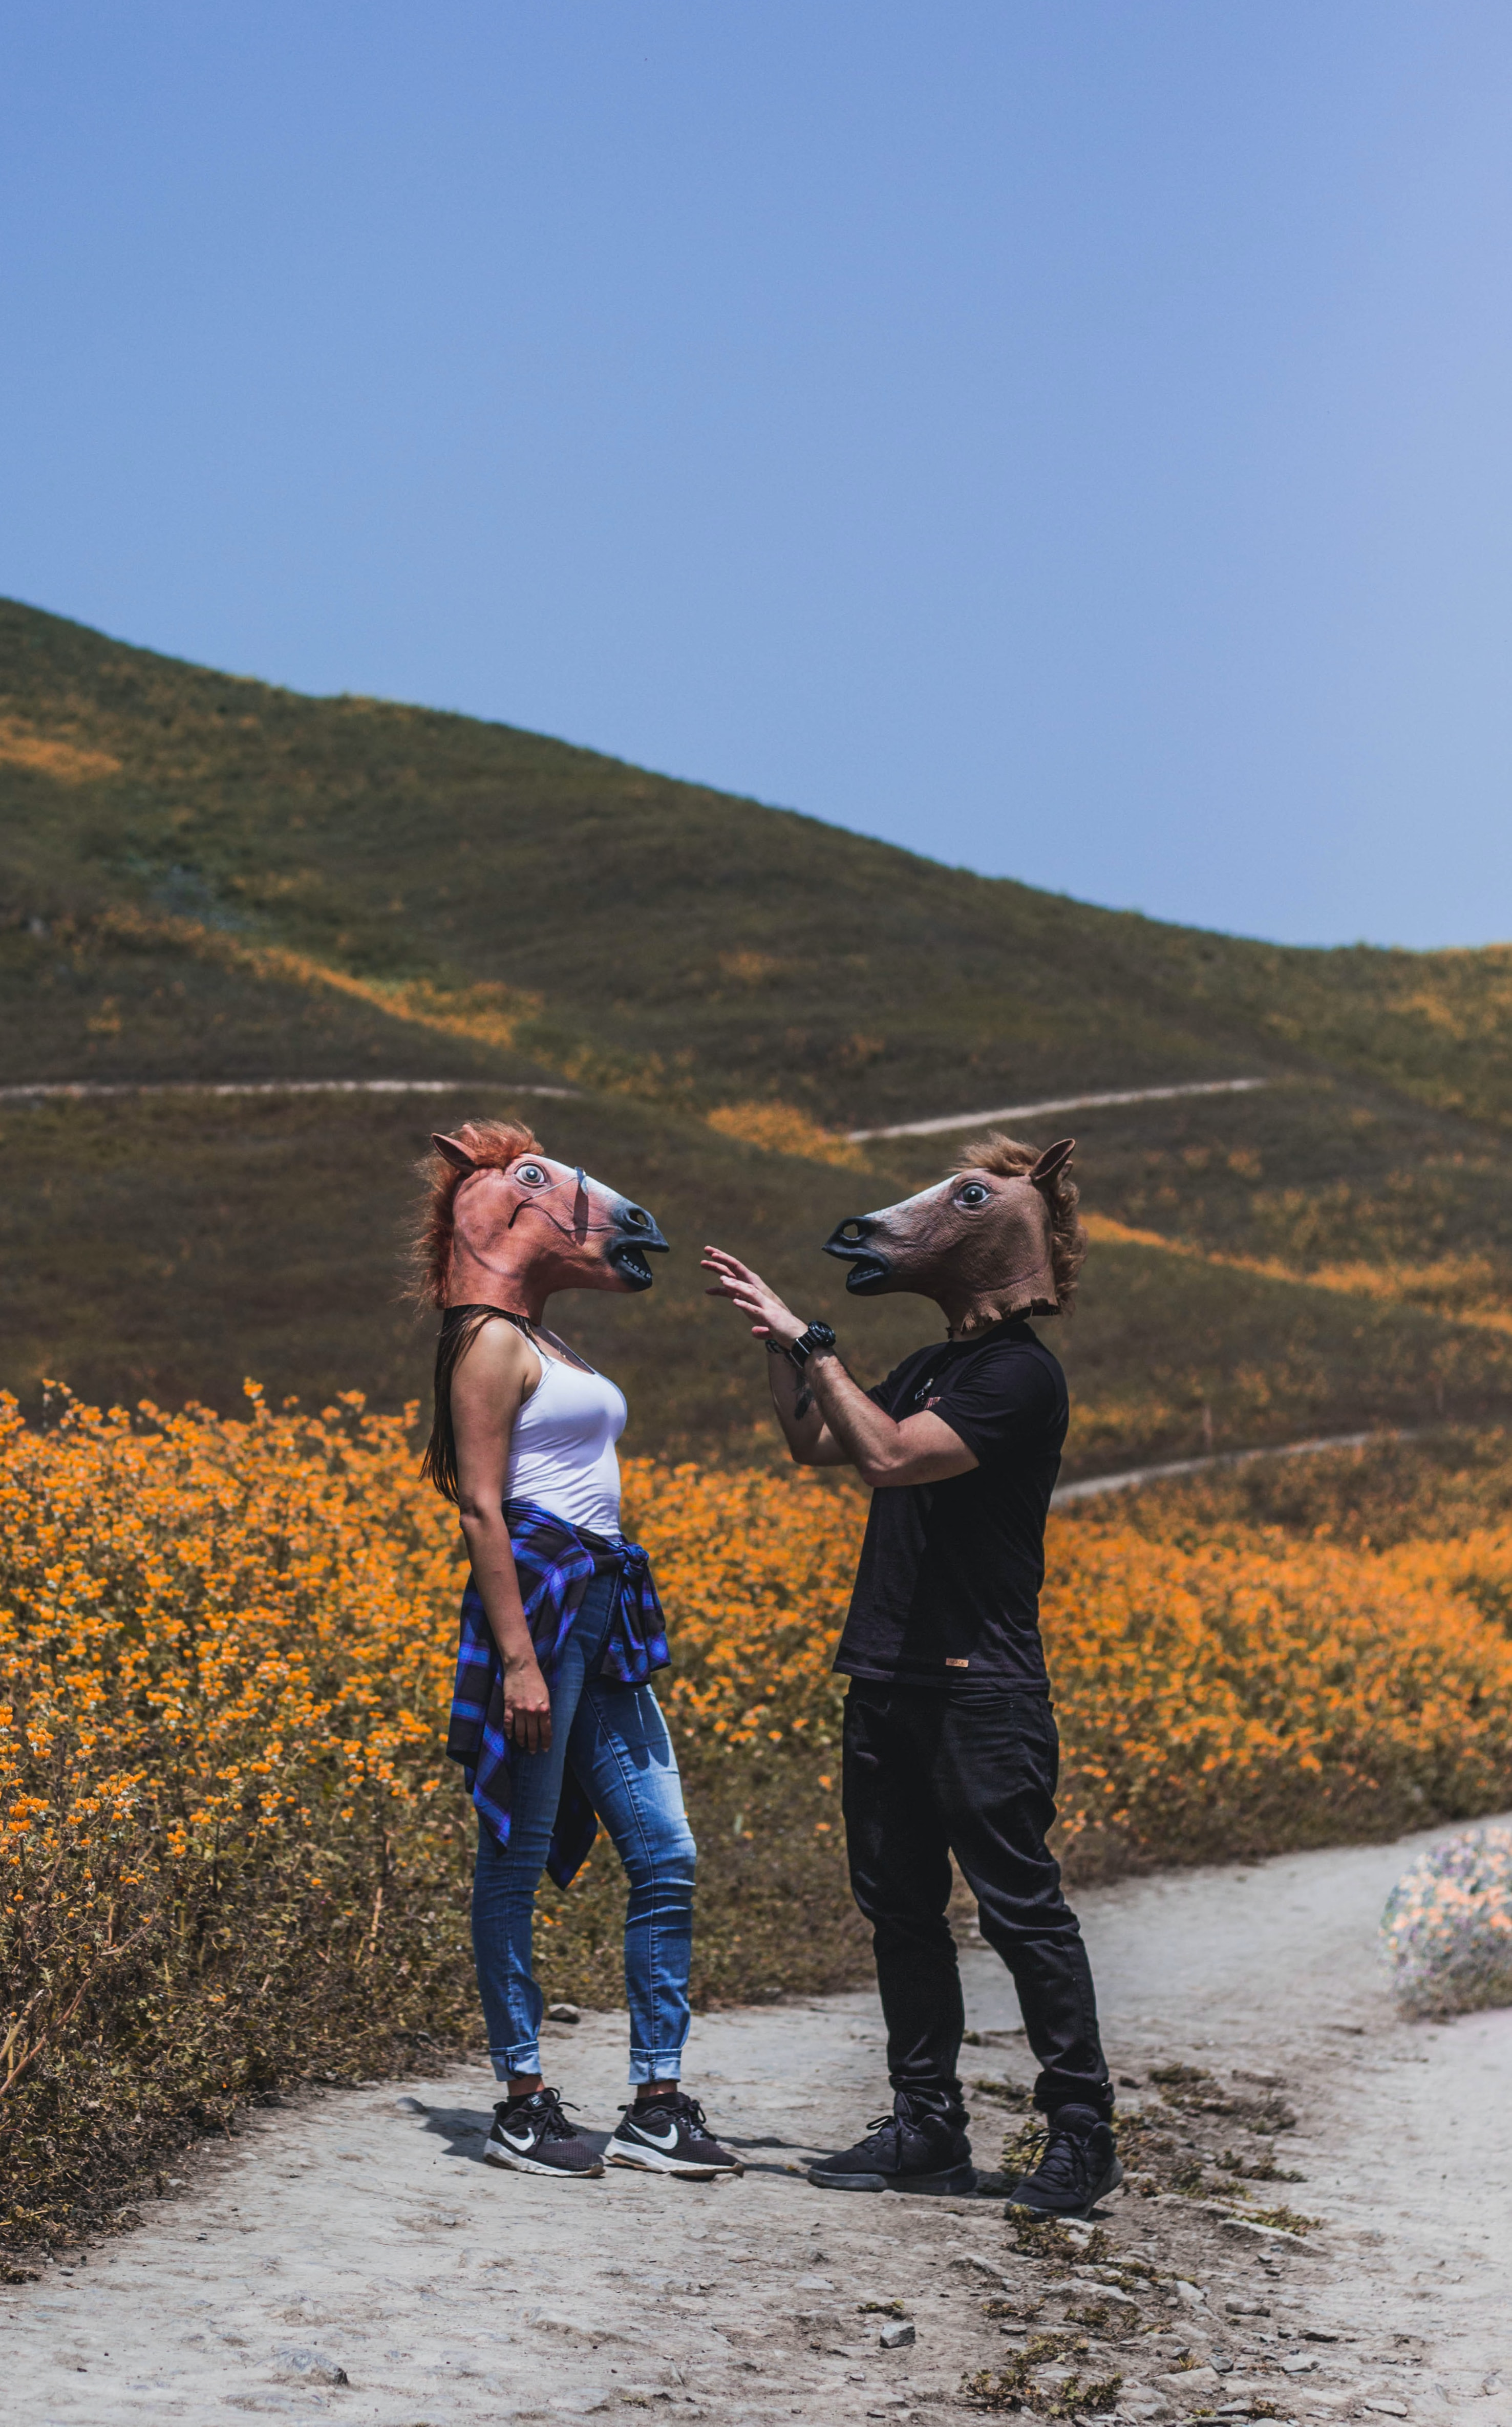 man and woman facing each other while wearing horse masks near flower field during daytime